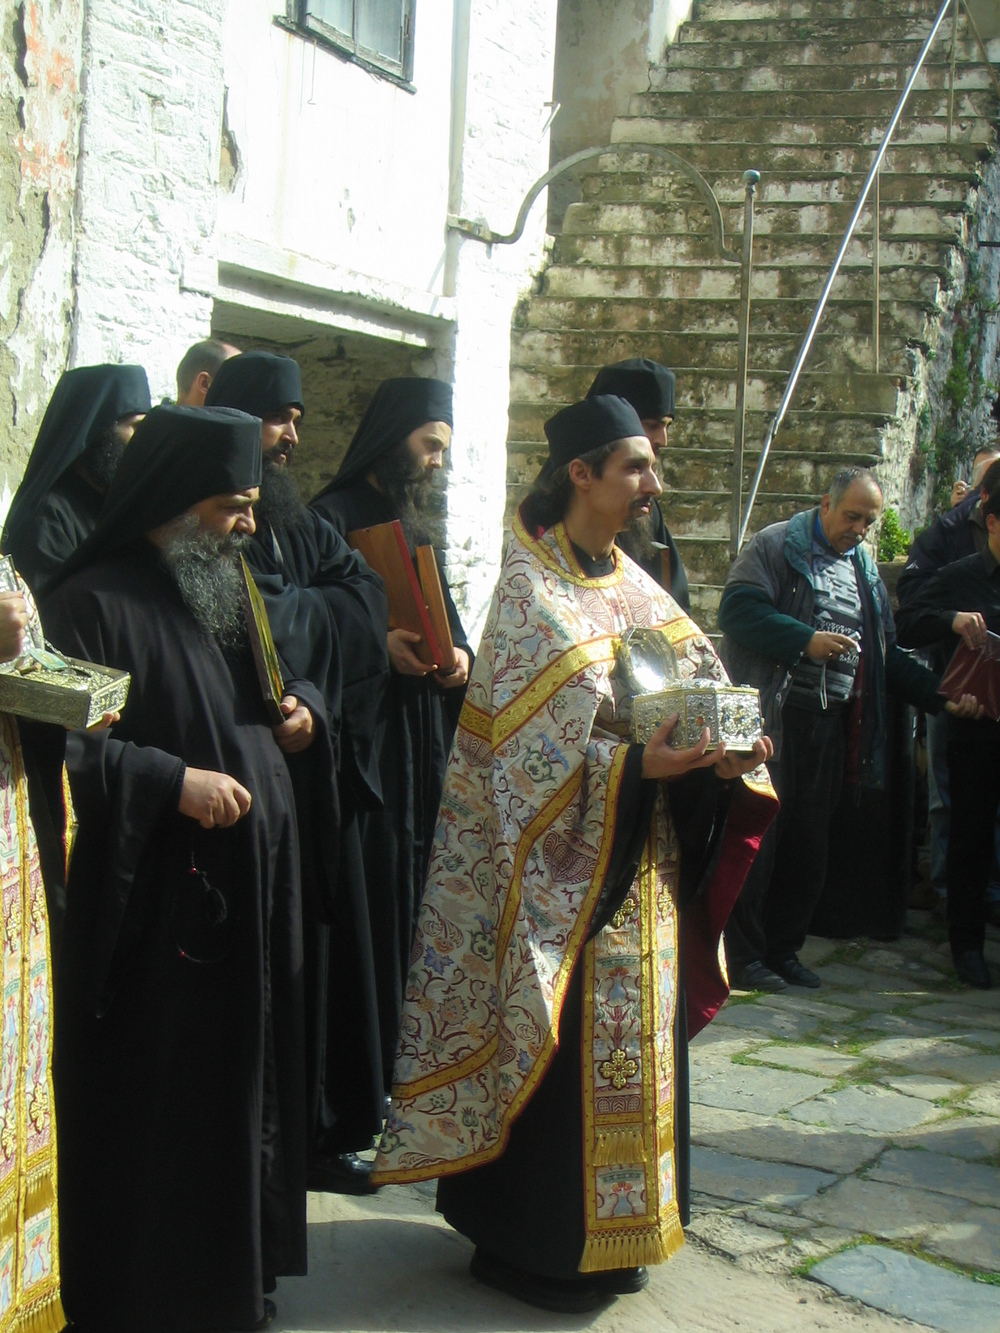 Fr. Achilles at the monastery of Vatopedi, Mt. Athos processing with the relics of St. John Chrysostom on the Sunday of Orthodoxy, 2008.